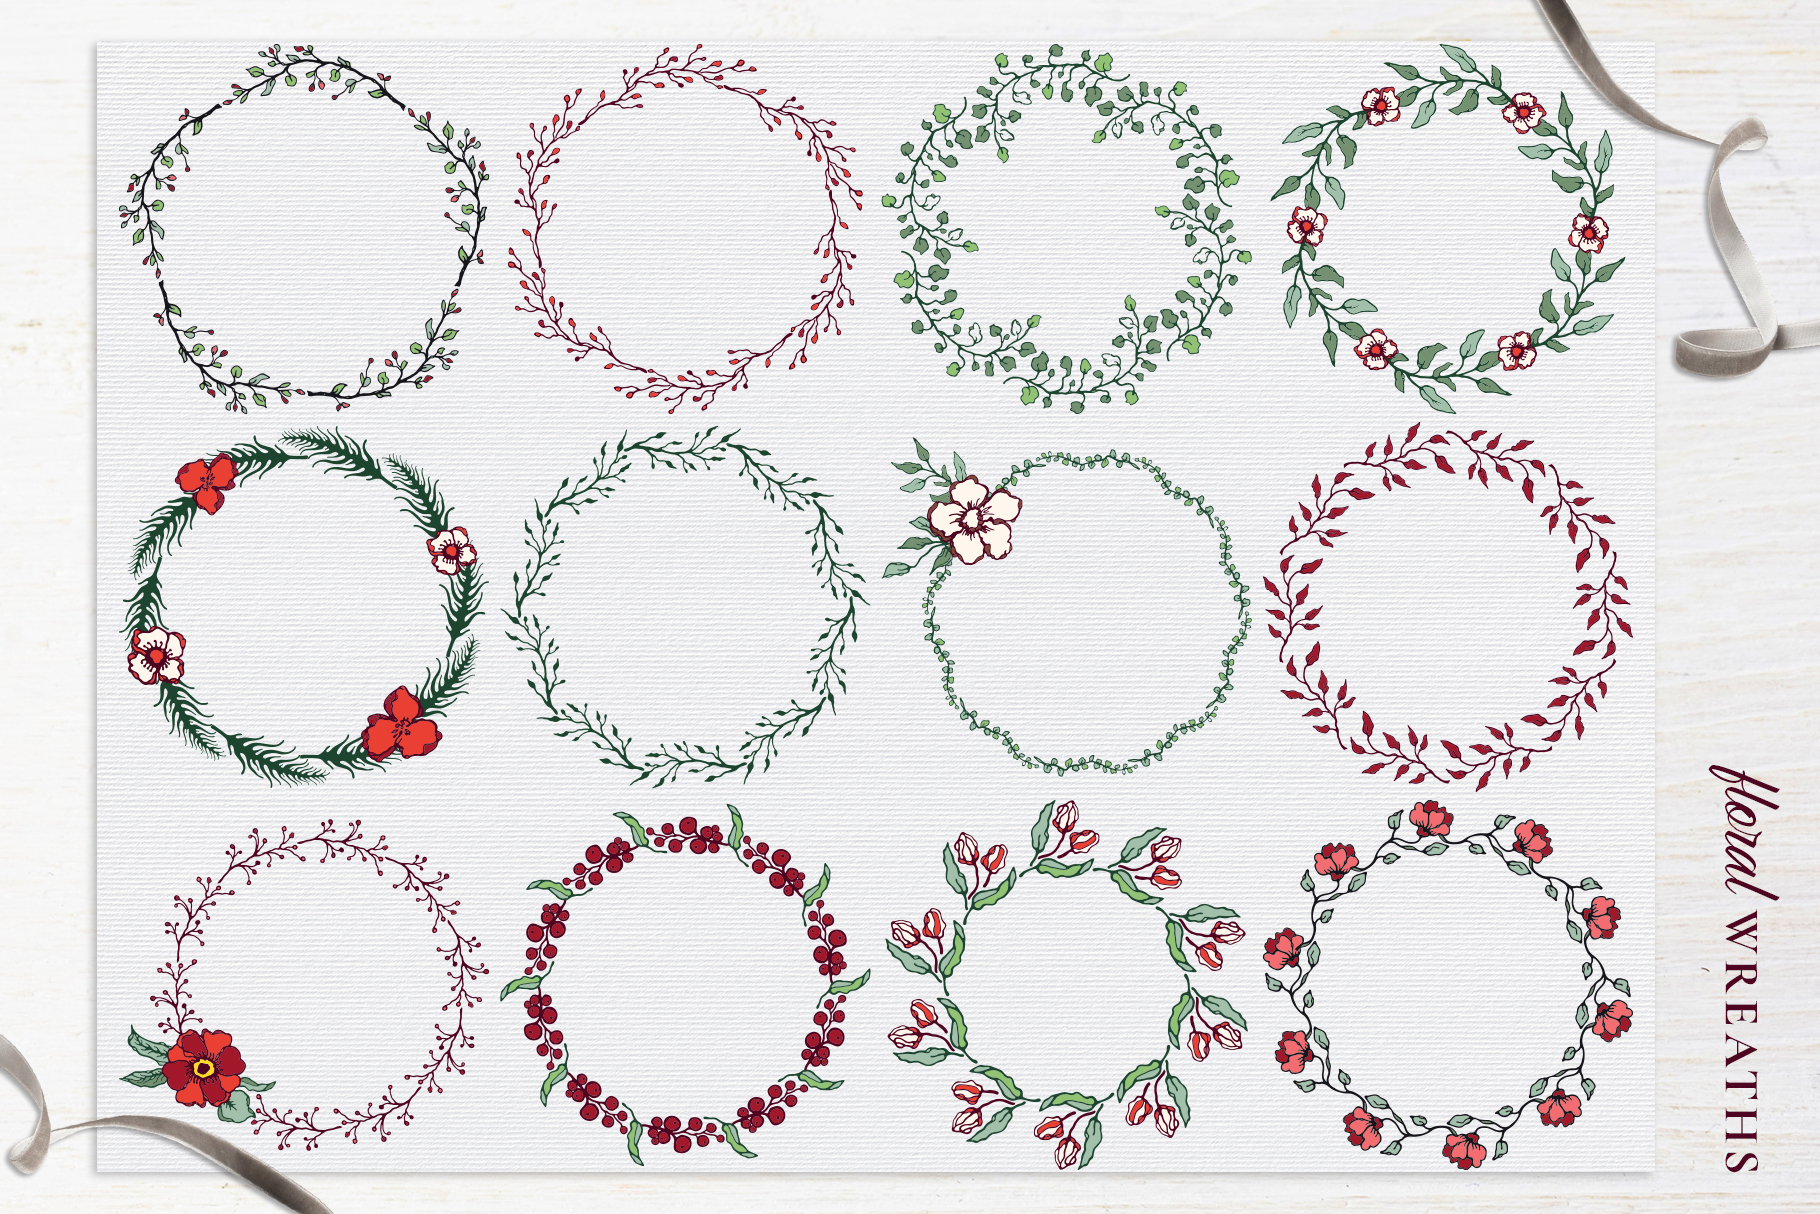 Winter Floral Patterns & Illustrations example image 13